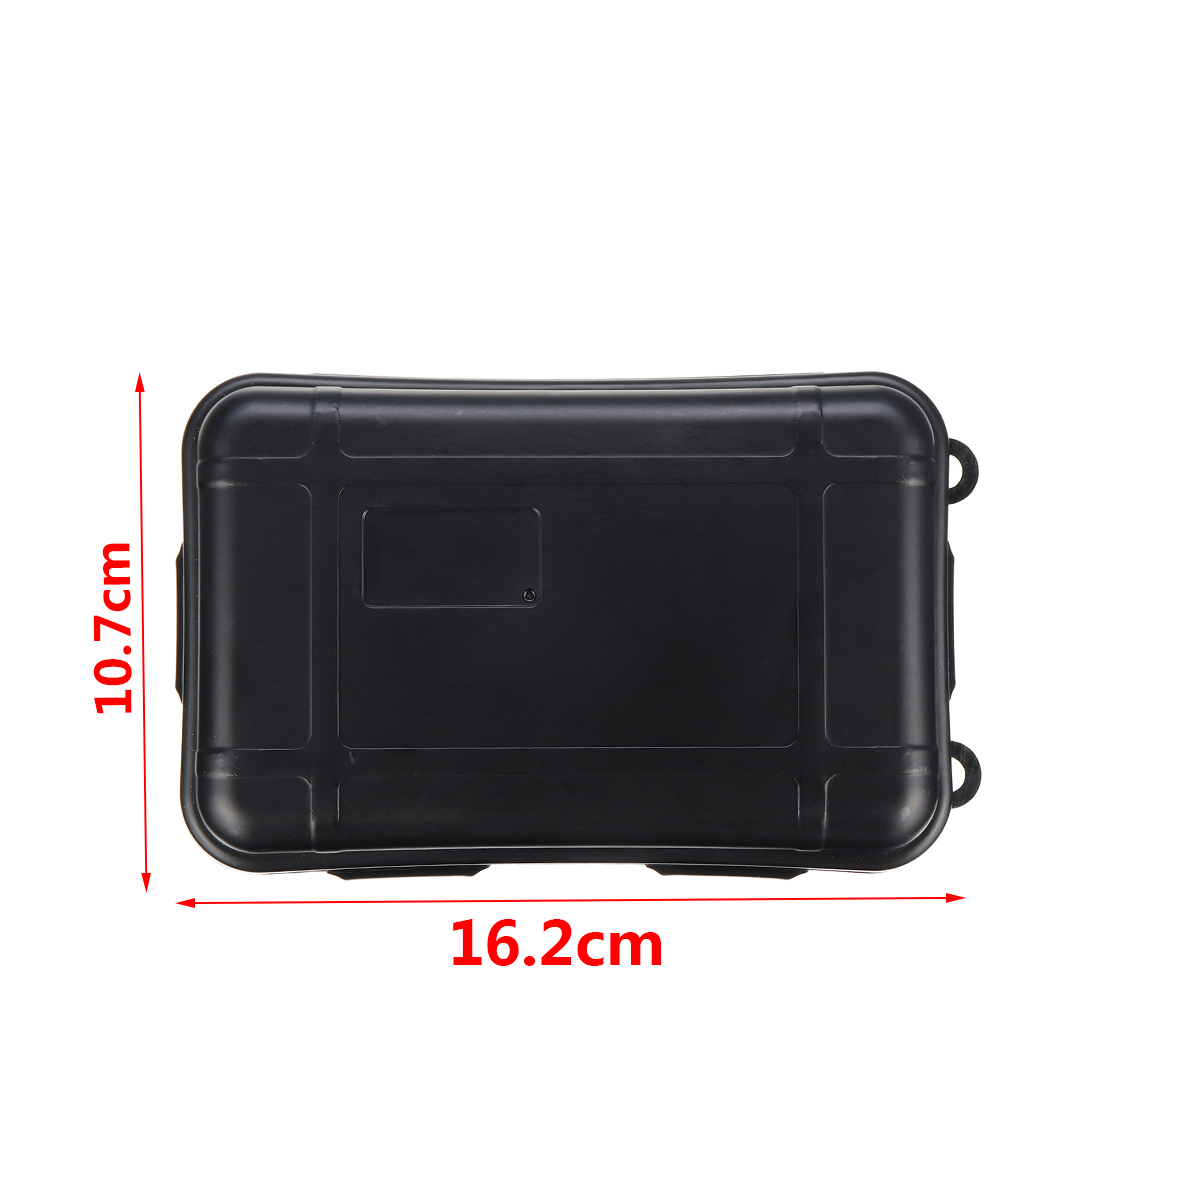 10 in 1 SOS Emergency Survival Equipment Tools Kit Tactical Hunting Gear Tools with Storage Box